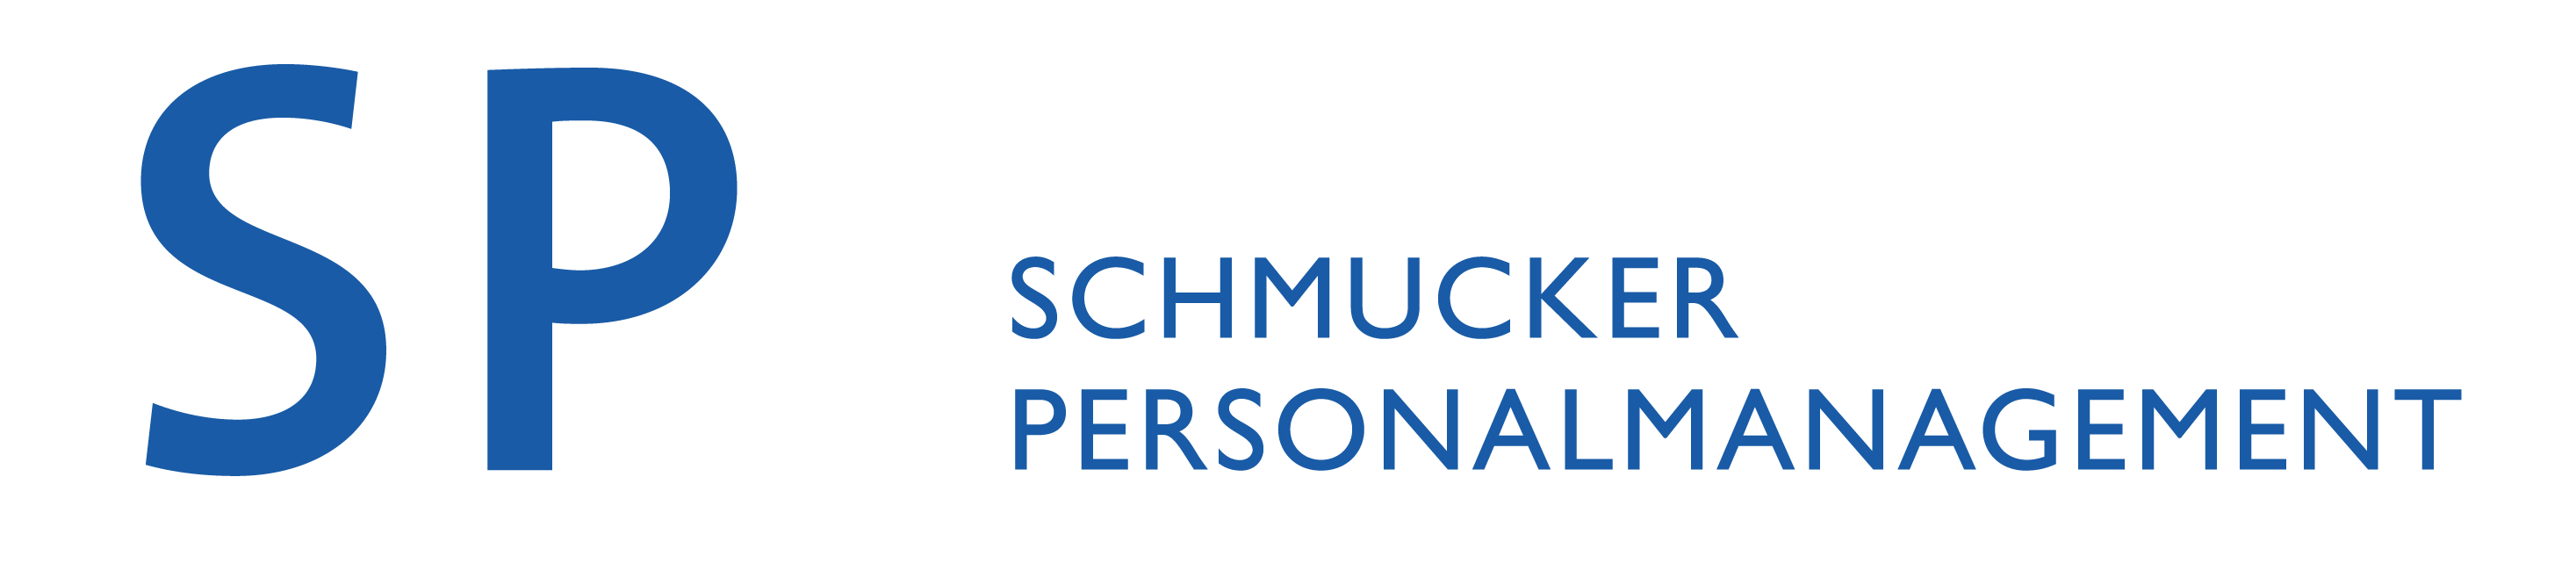 Schmucker Personalmanagement